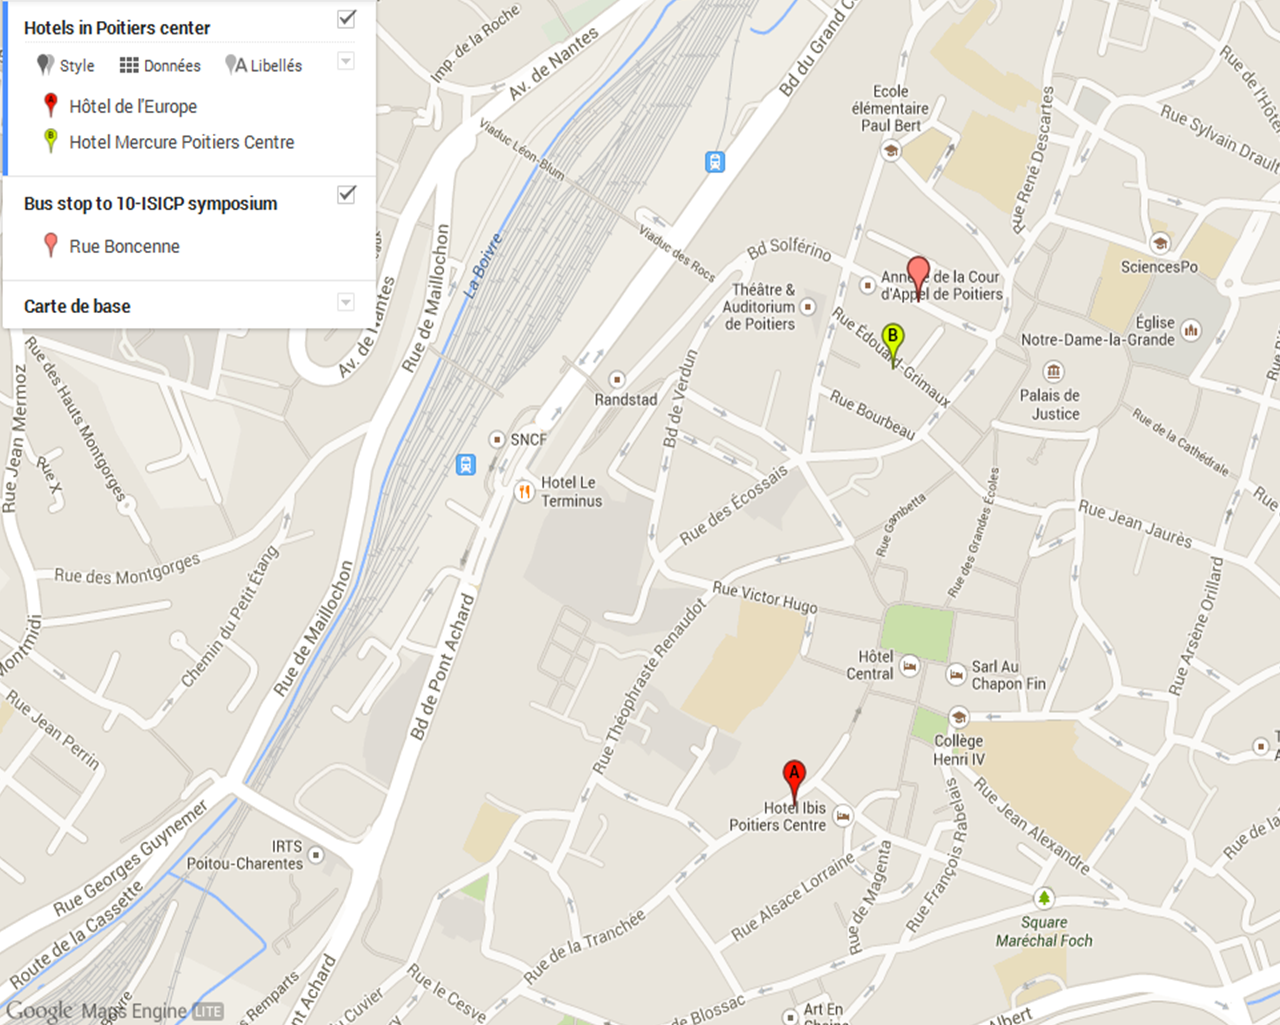 Map 1 - Hotels in Poitiers center and bus stop to 10 ISICP symposium